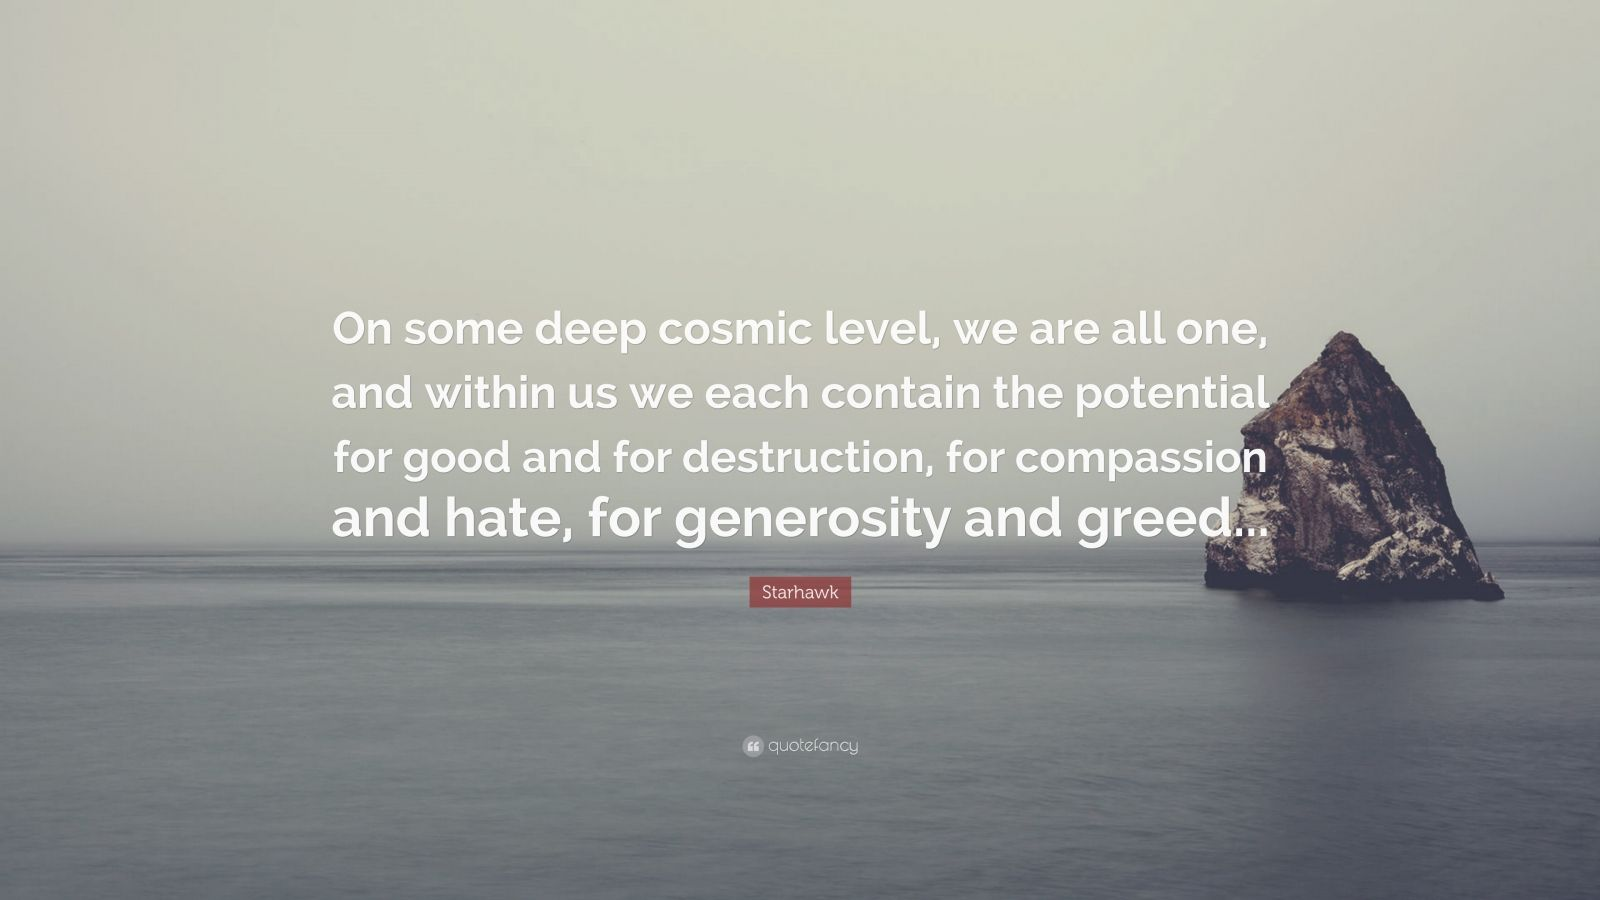 """Starhawk Quote: """"On some deep cosmic level, we are all one, and within us we each contain the potential for good and for destruction, for compassion and hate, for generosity and greed..."""""""